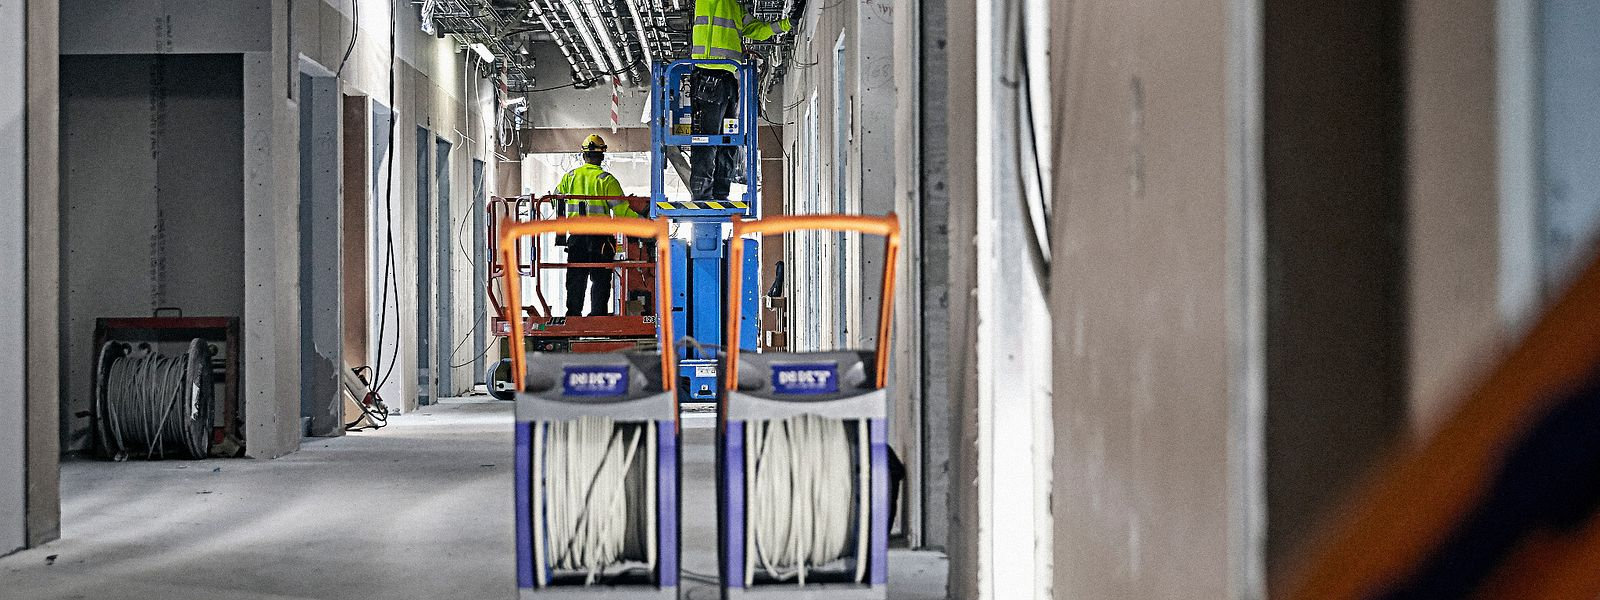 Installers using Qaddy® with low voltage cable